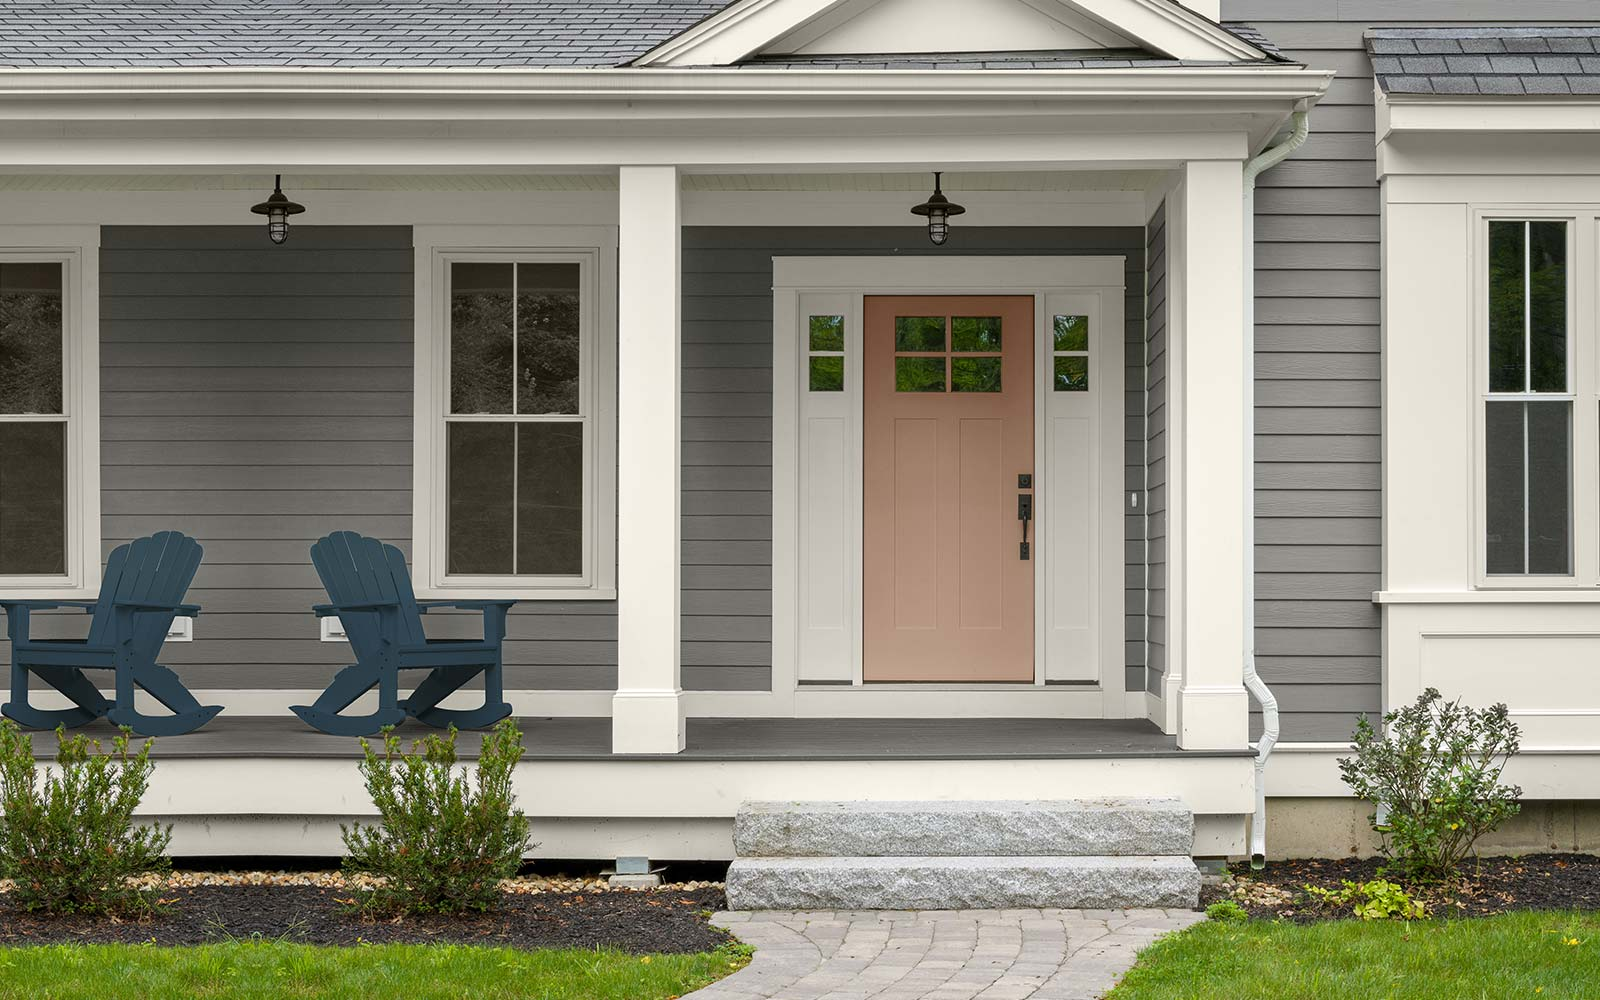 An exterior image with four color swatches sitting beside it. The image displays the four colors: a medium gray hue for the exterior body, a dark blue hue for the chair sitting on the porch, a dusty orange hue is used on the door, and a creamy white hue is used for the exteriors trim.